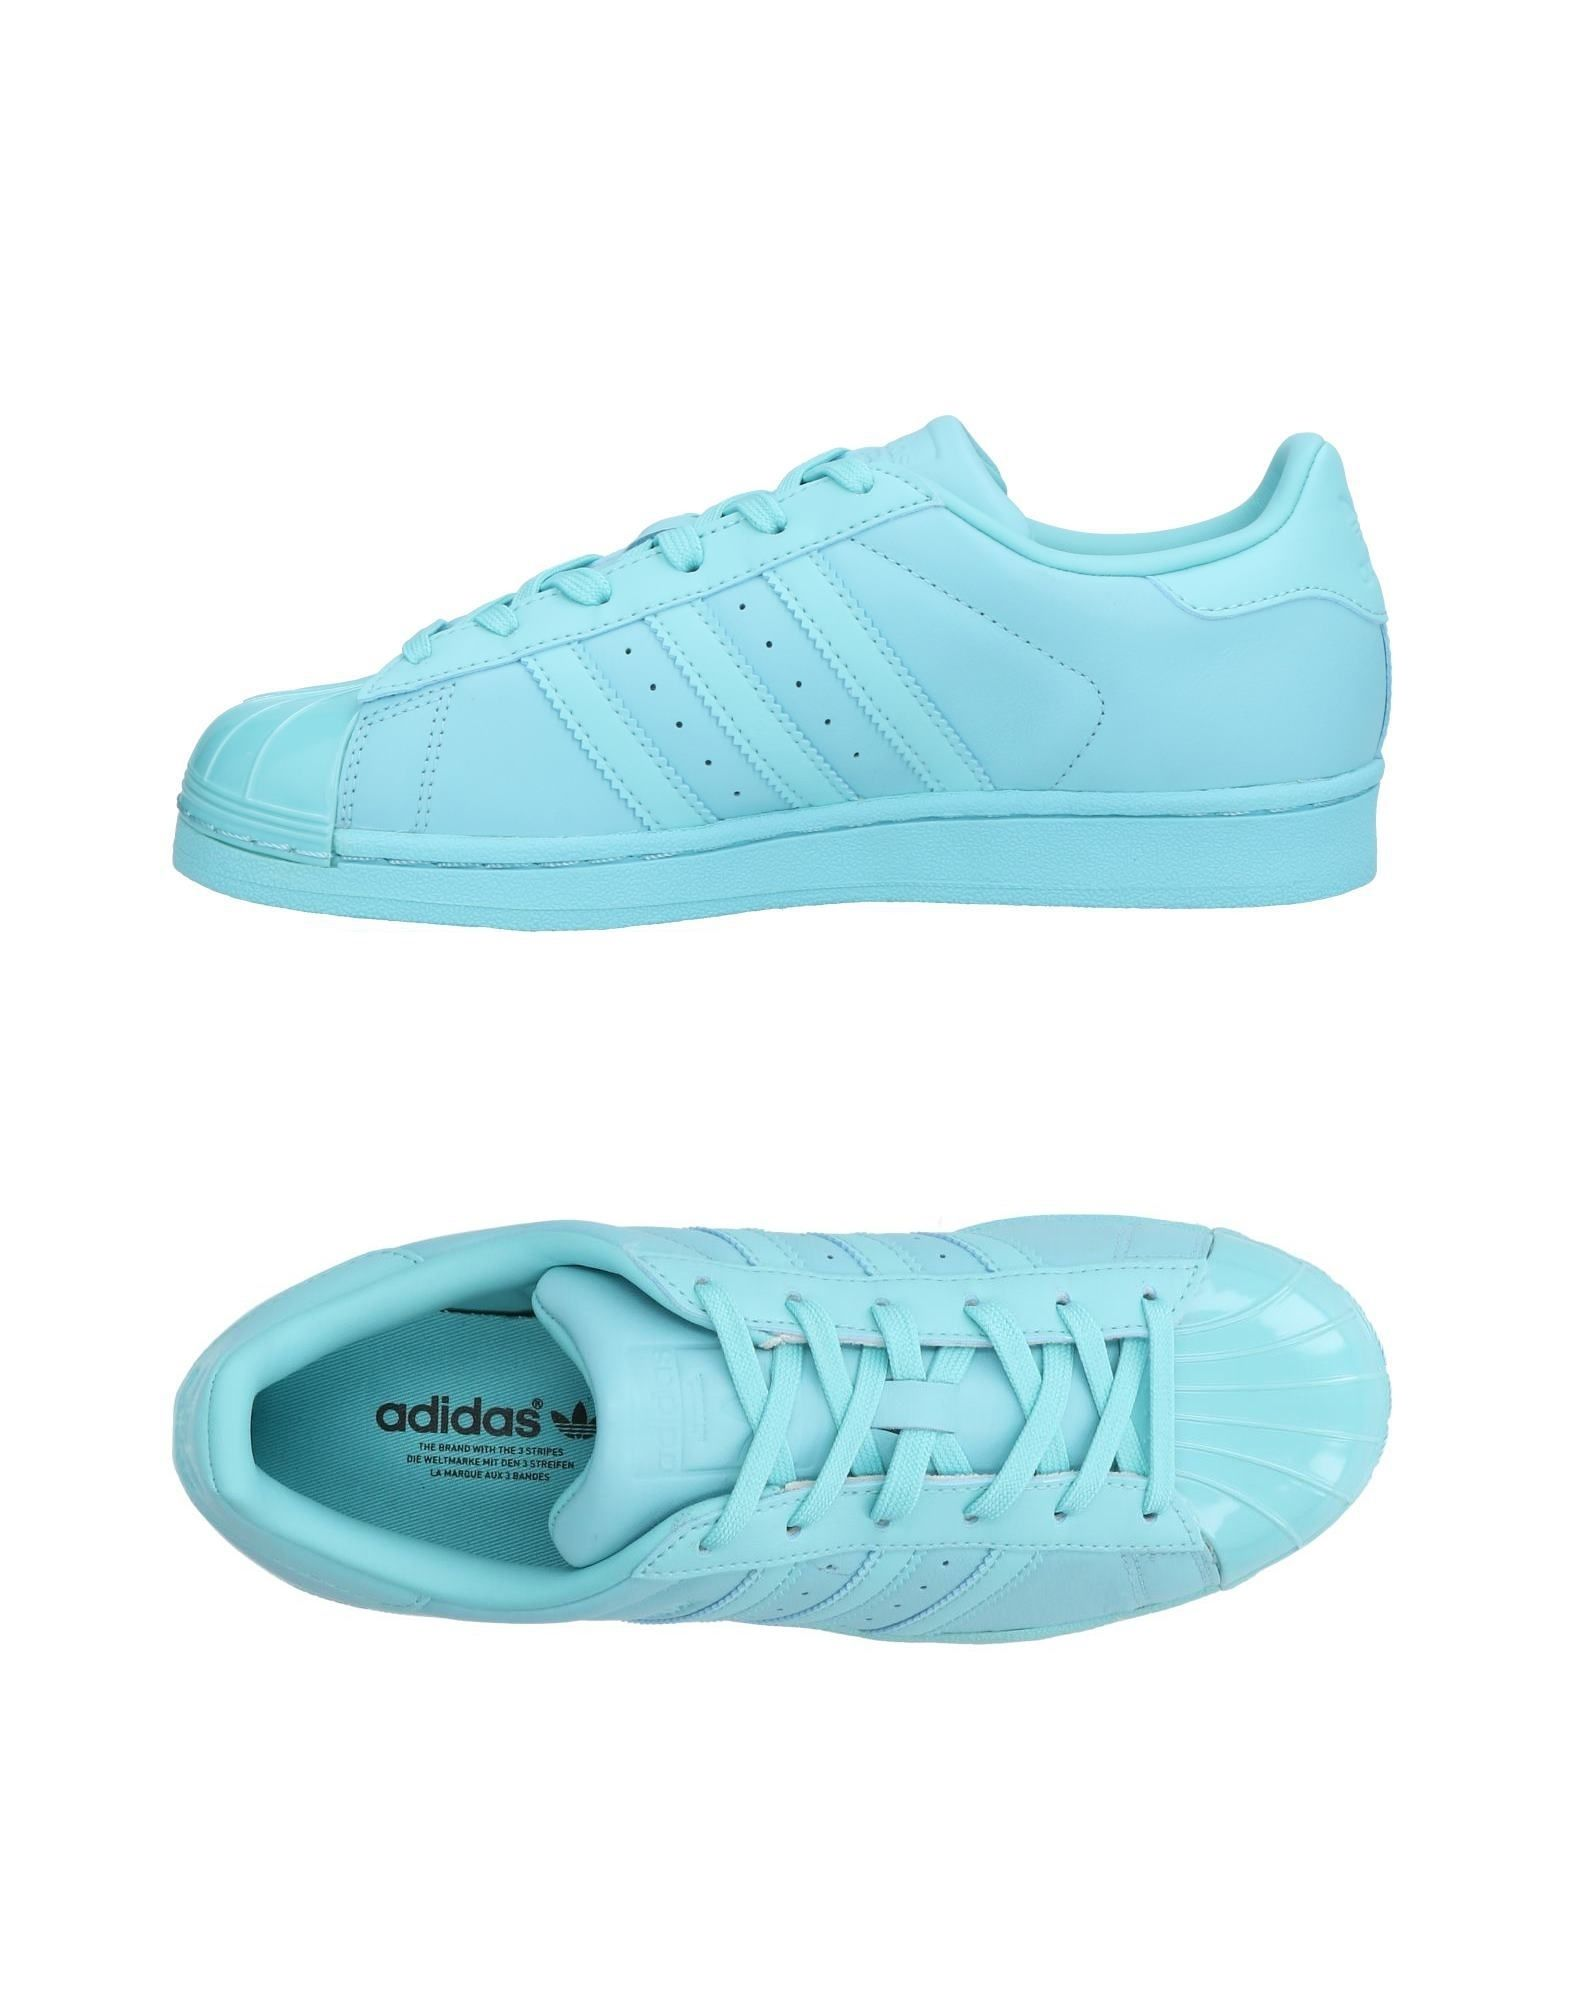 Adidas Sneakers Originals Sneakers - Women Adidas Originals Sneakers Adidas online on  United Kingdom - 11367295TW 5a9555